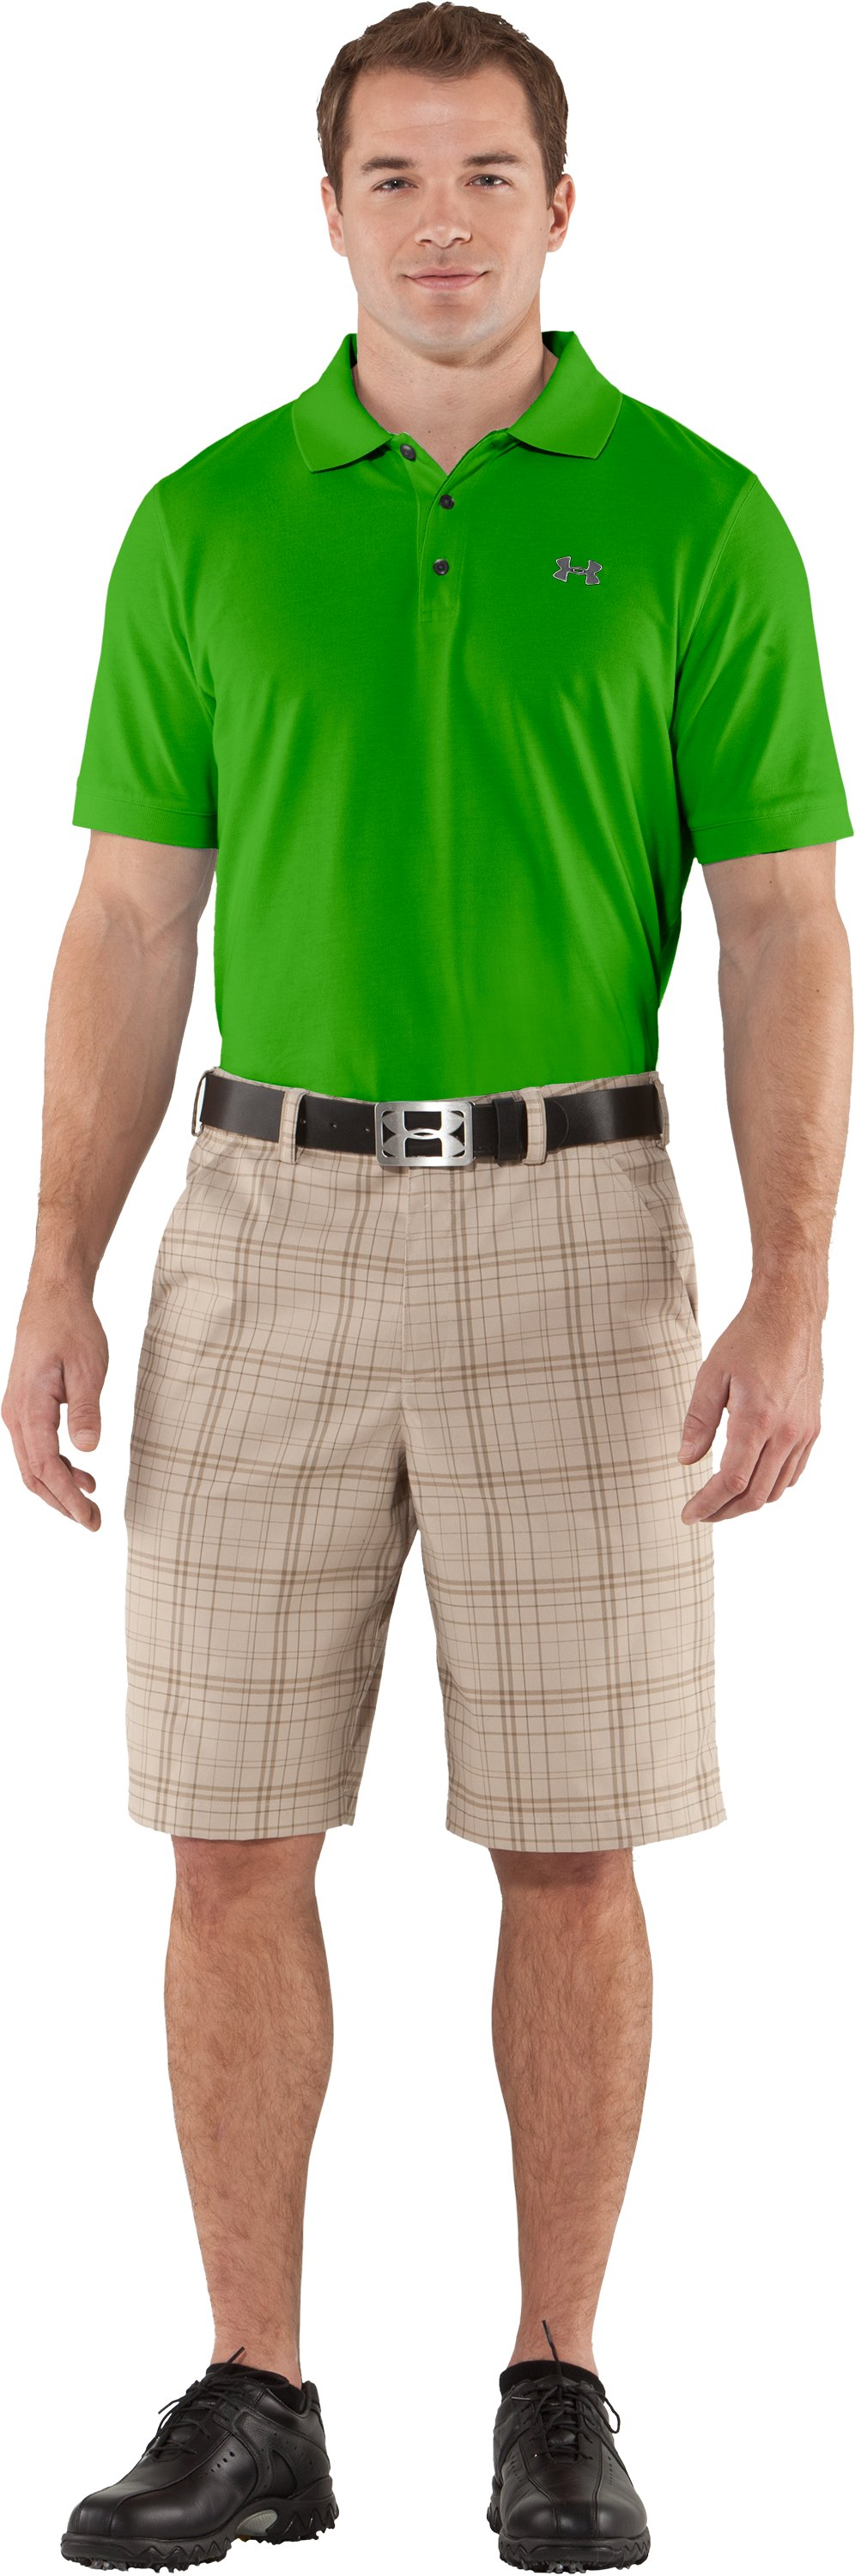 Men's Charged Cotton® Pique Polo, PARROT GREEN, Front